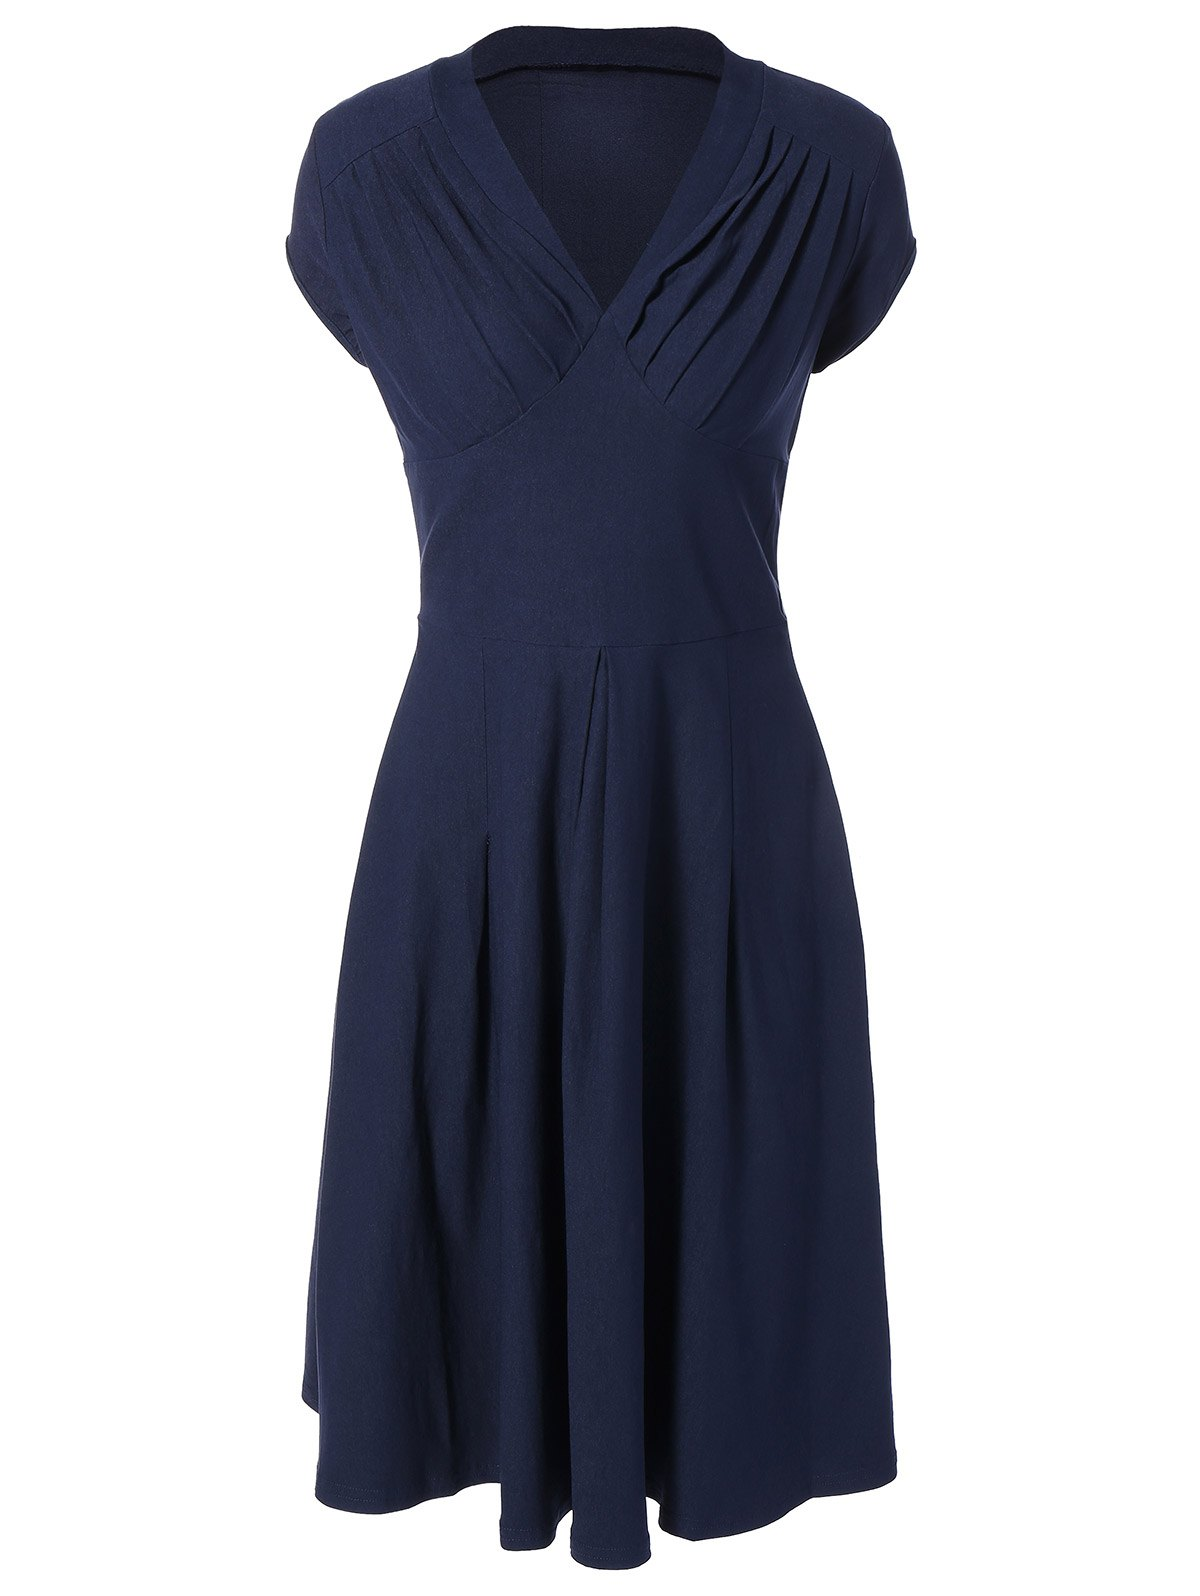 Summer Ruched Chest Swing Dress - PURPLISH BLUE S